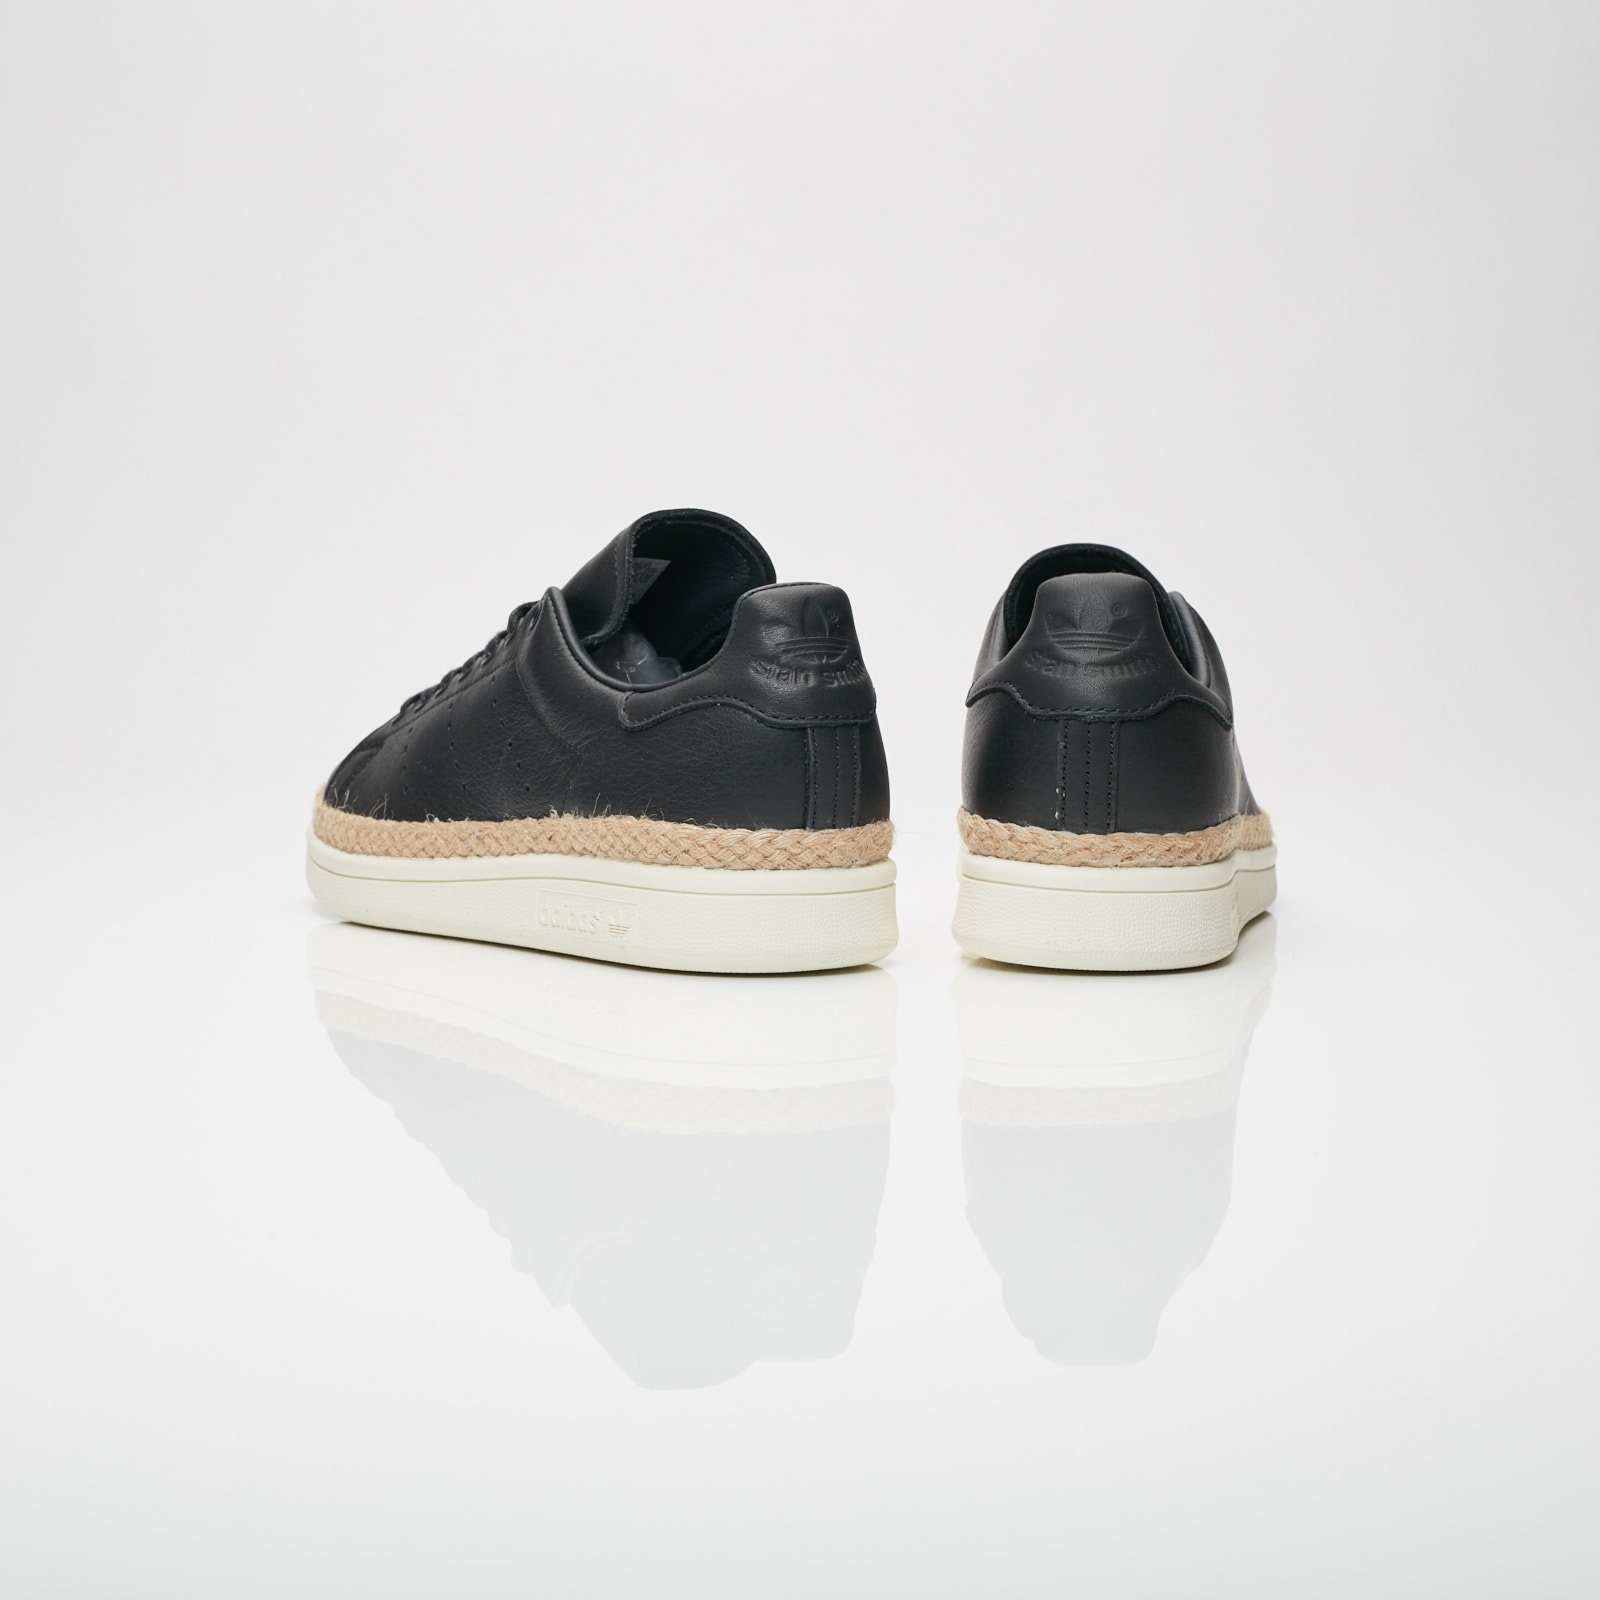 check out ad592 4260d adidas Stan Smith New Bold - Da9536 - Sneakersnstuff   sneakers    streetwear på nätet sen 1999